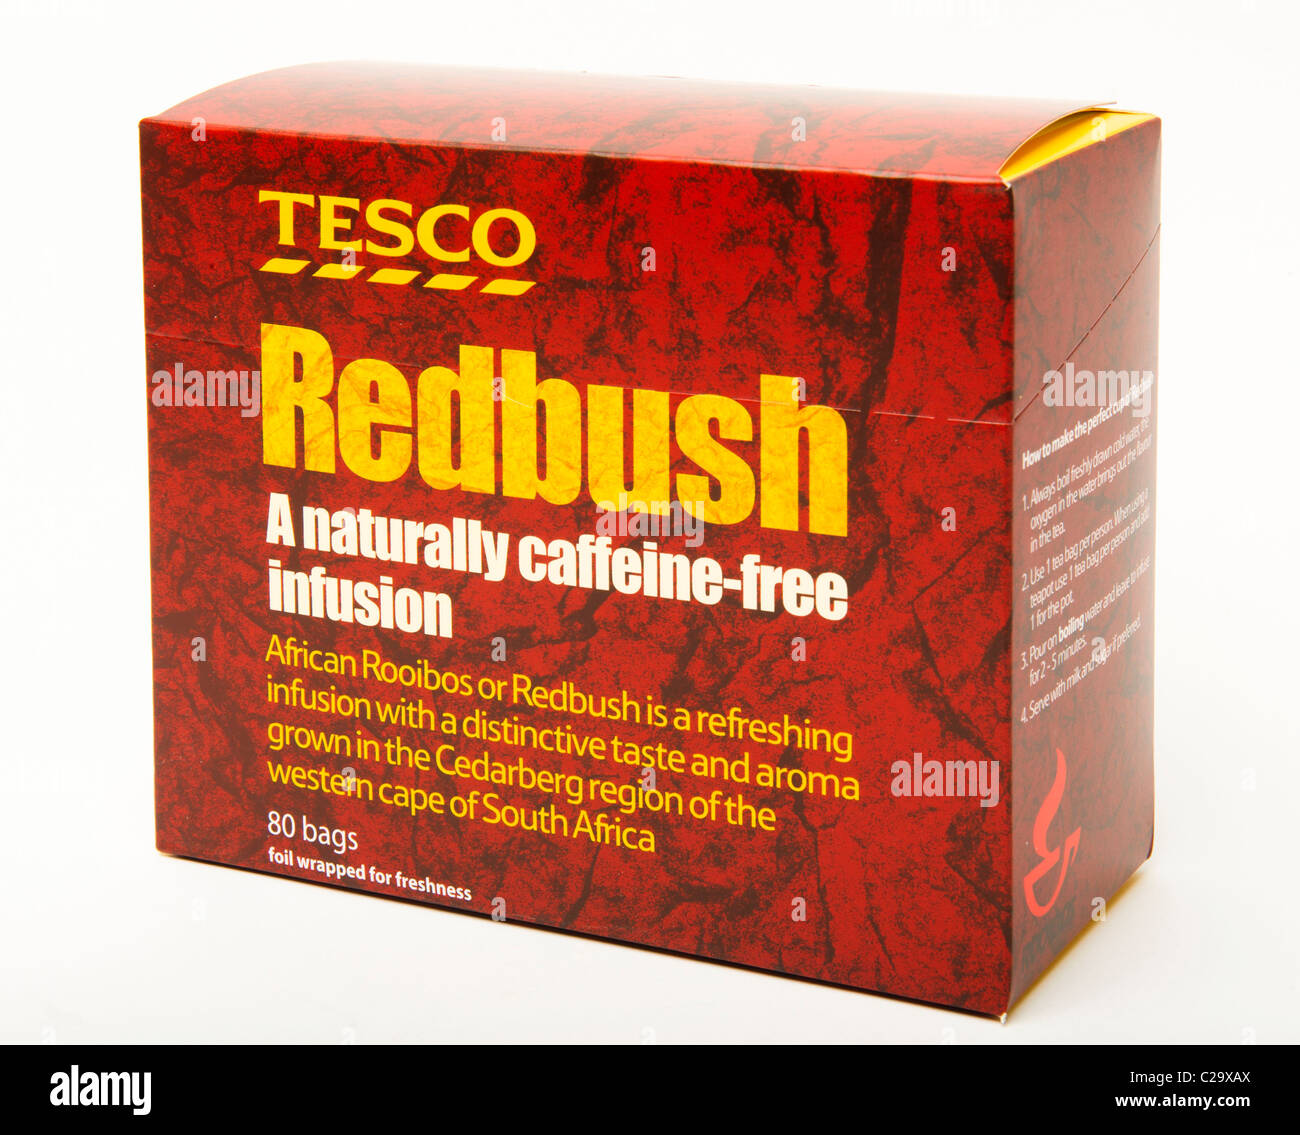 'Red Bush' 'thé' sans caféine thé red bush alternative Photo Stock